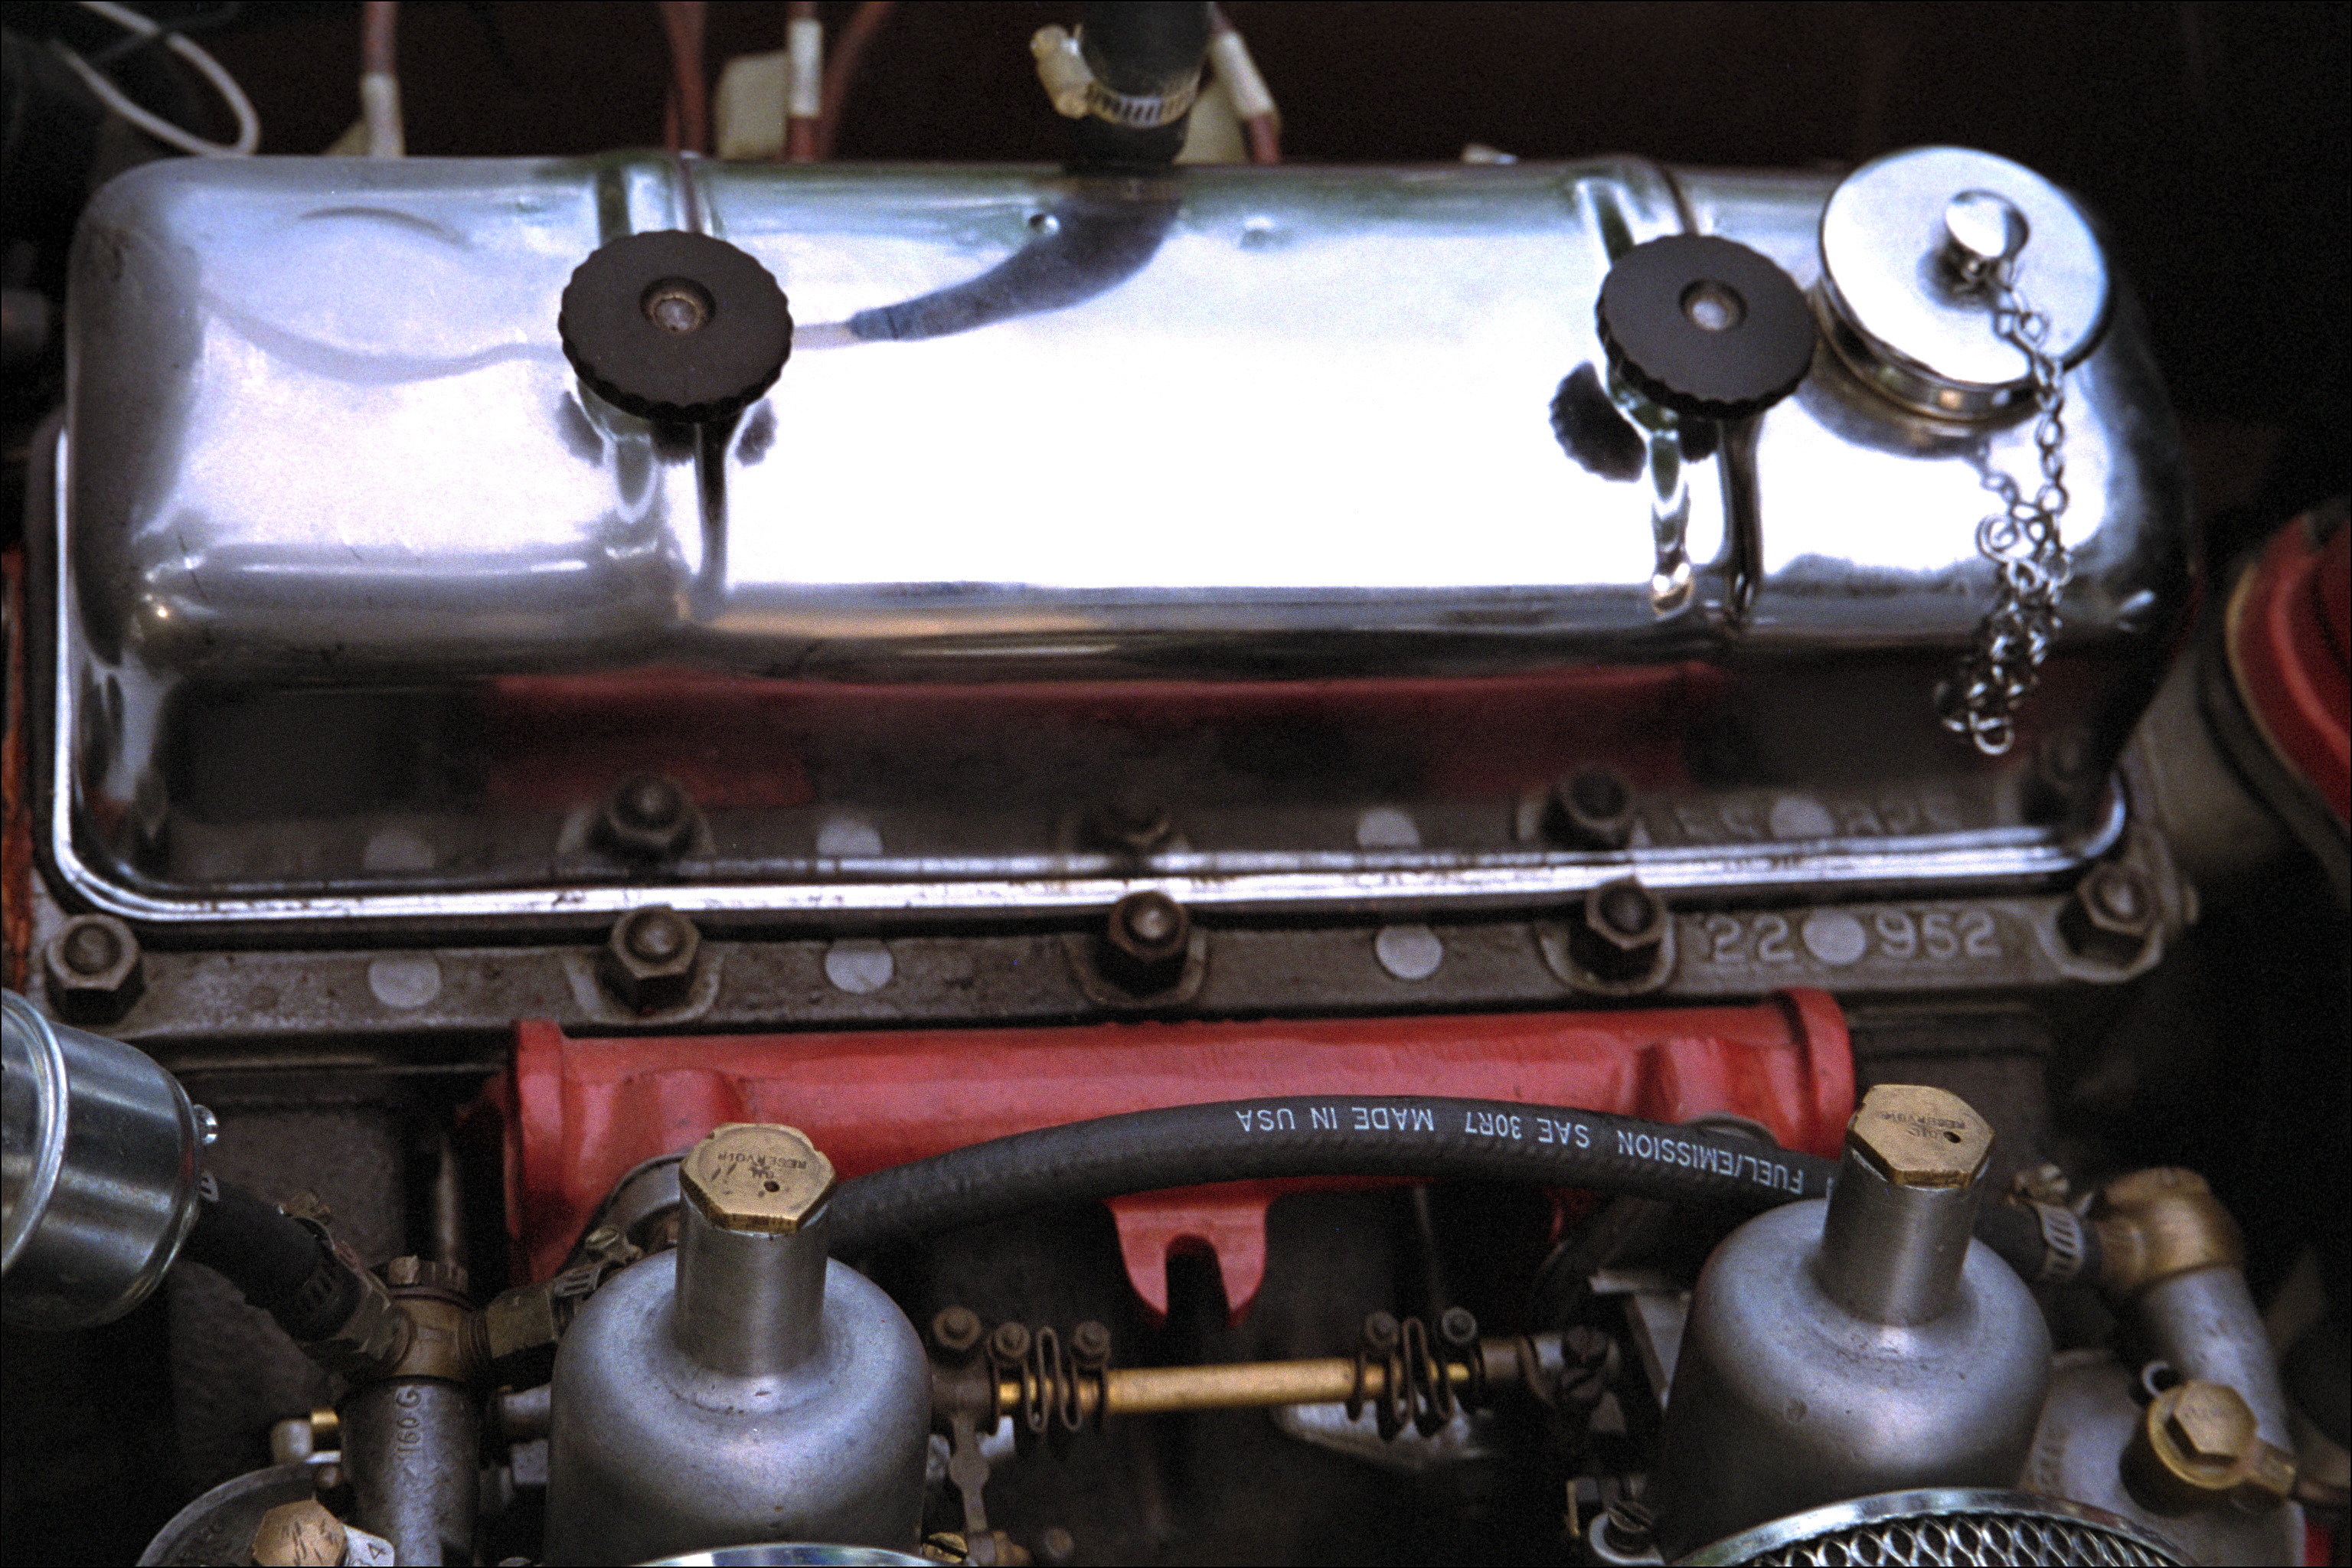 Engine valve cover, carbs, from top right